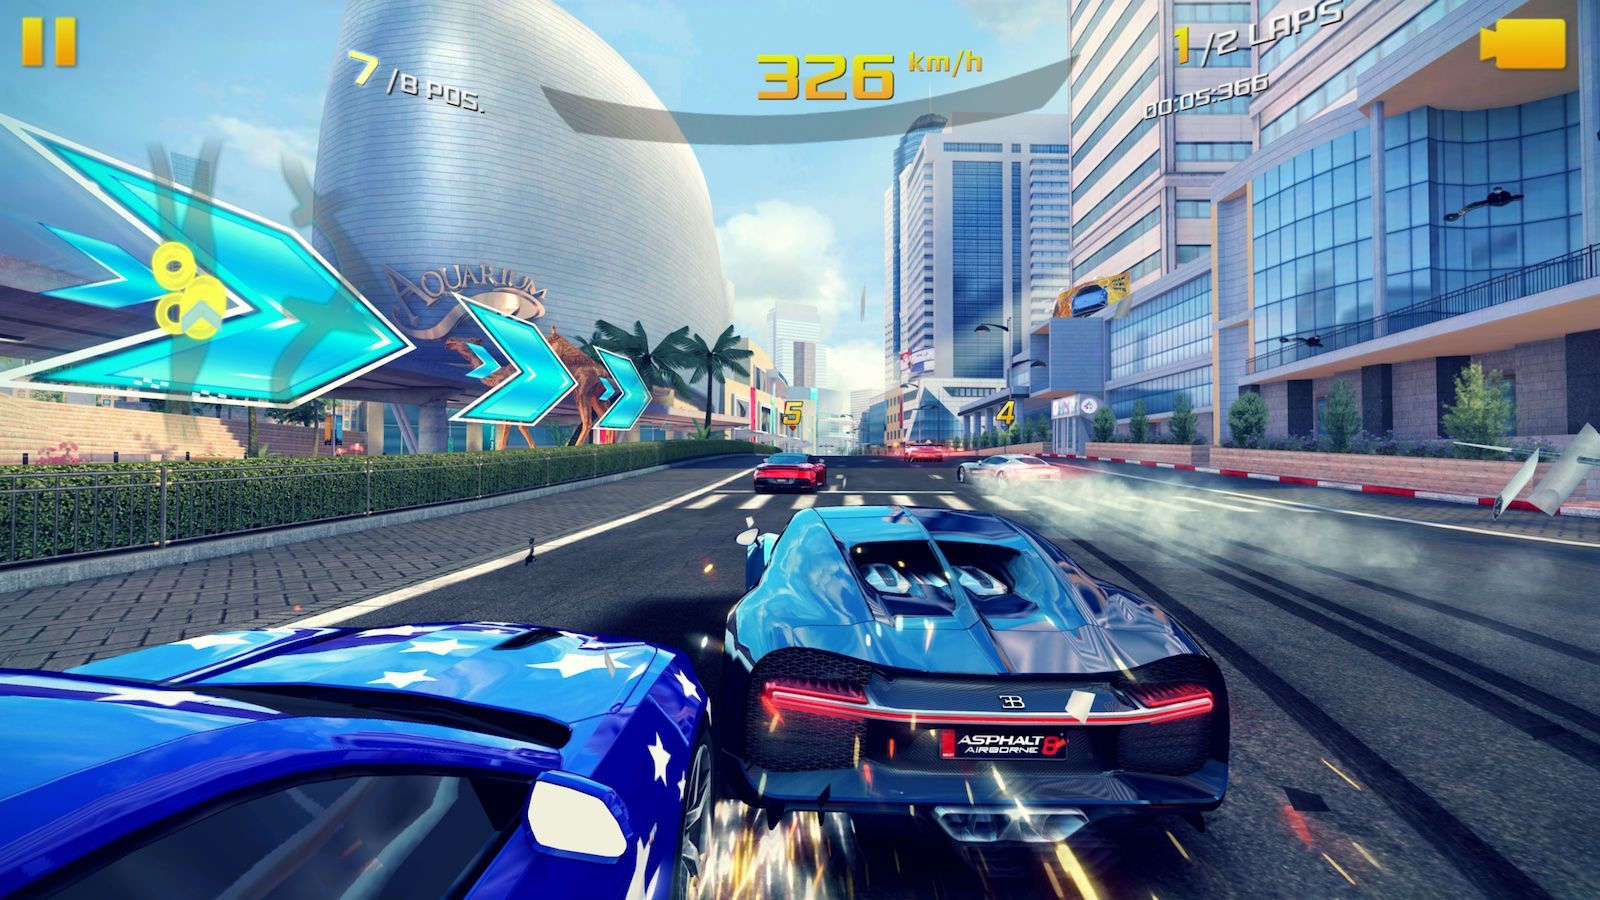 Two New Games Coming to Apple Arcade, Including Gameloft's Racing Classic 'Asphalt 8: Airborne'